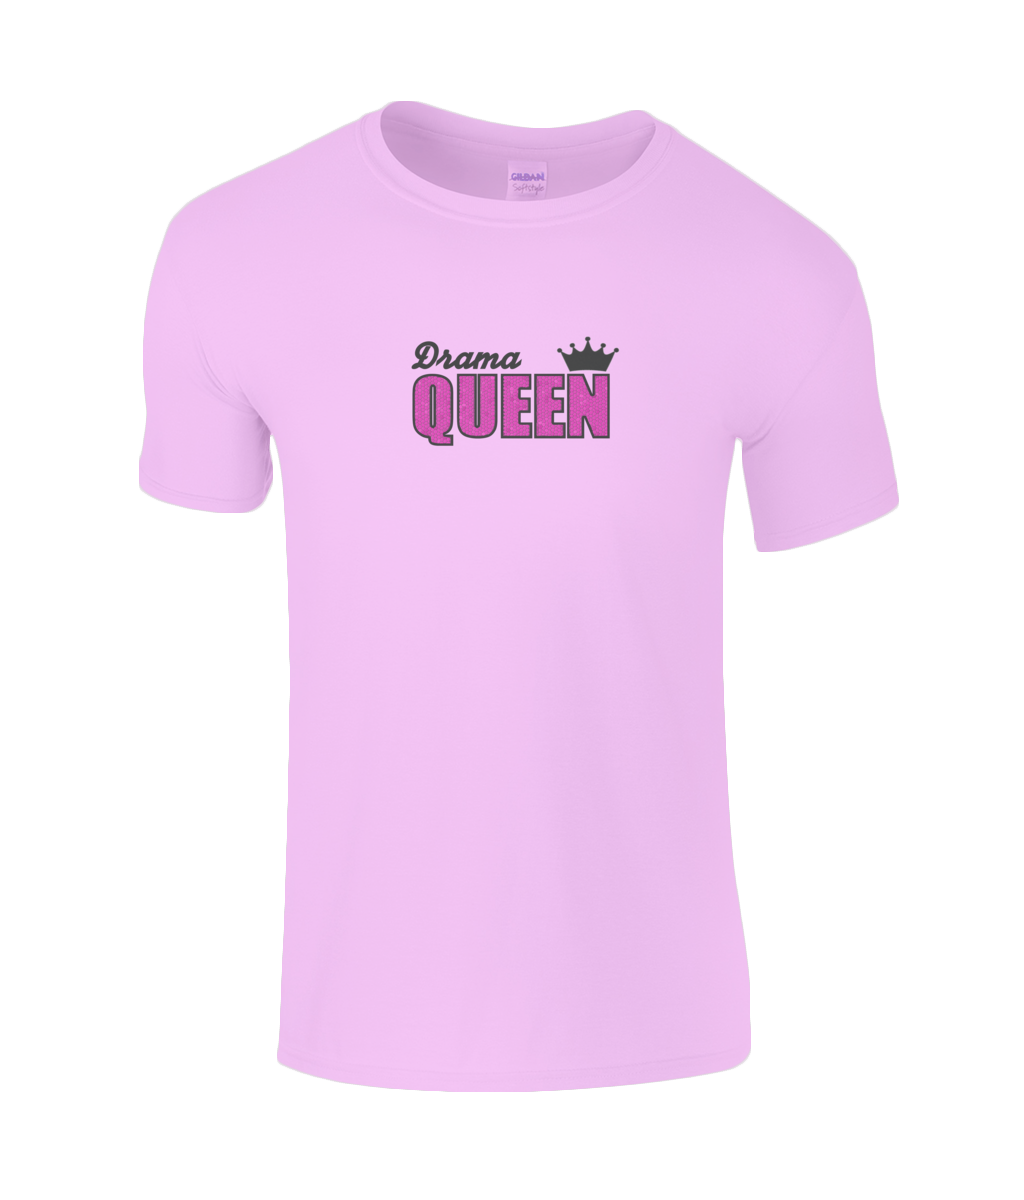 Drama Queen Kids T-Shirt